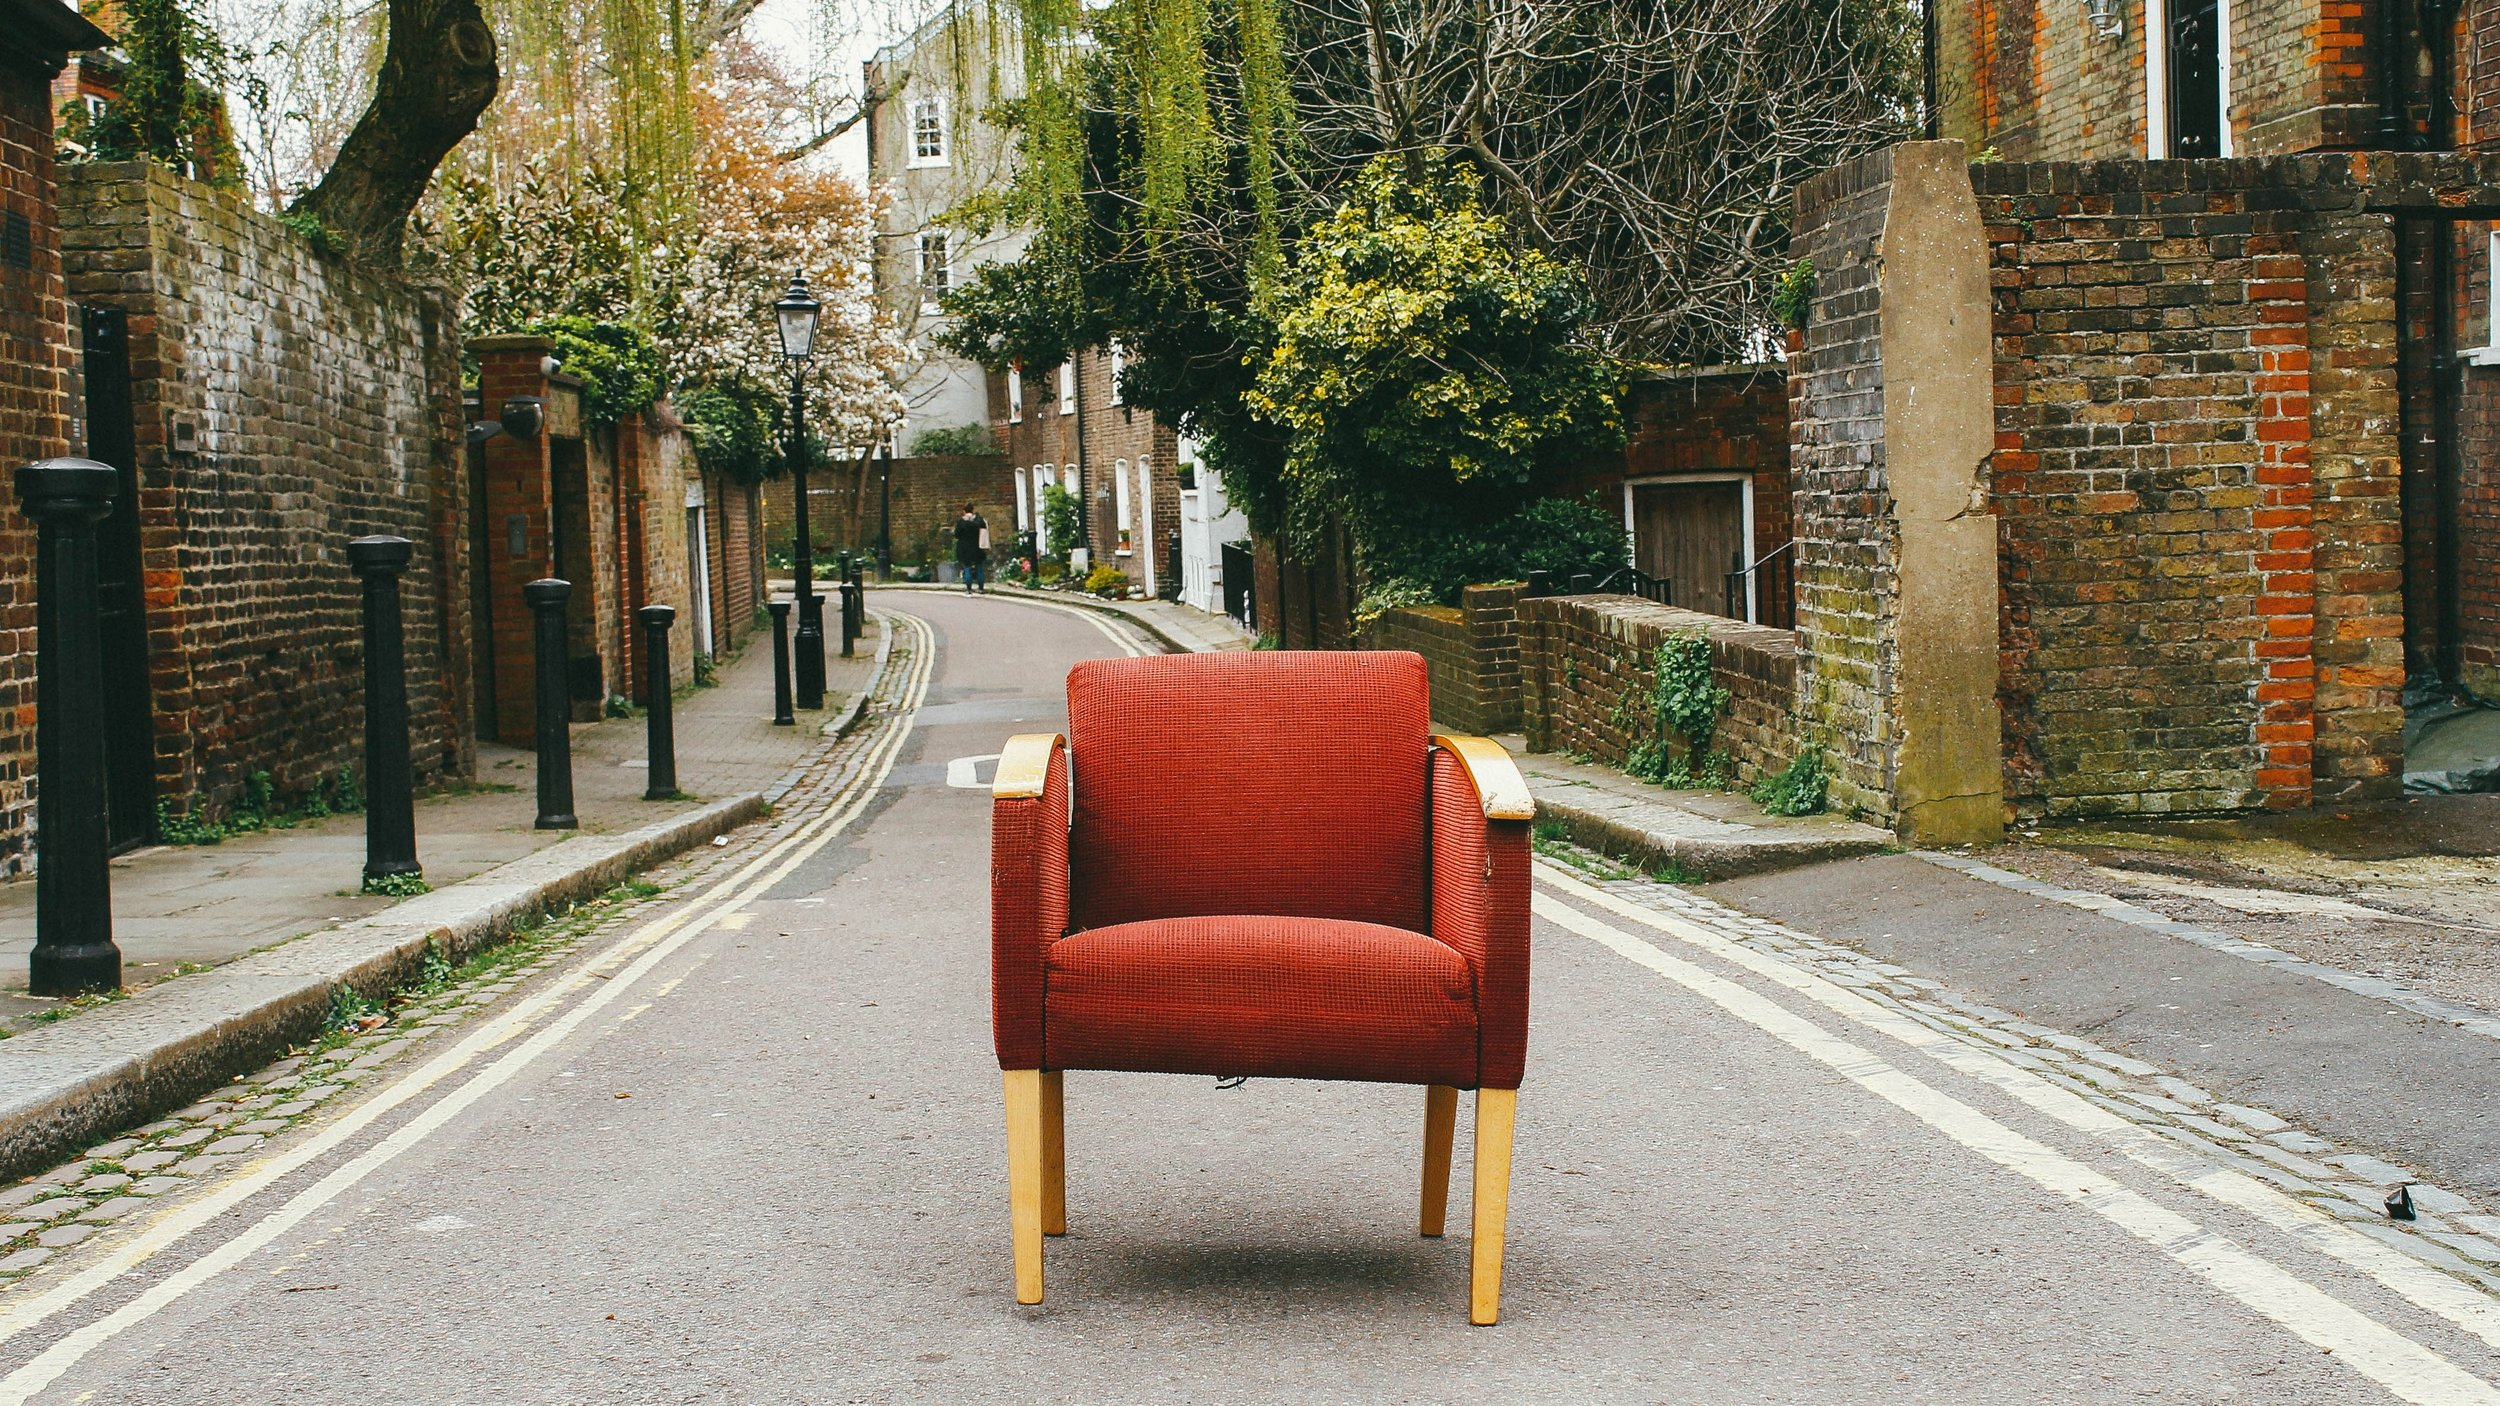 A red chair in the middle of a road